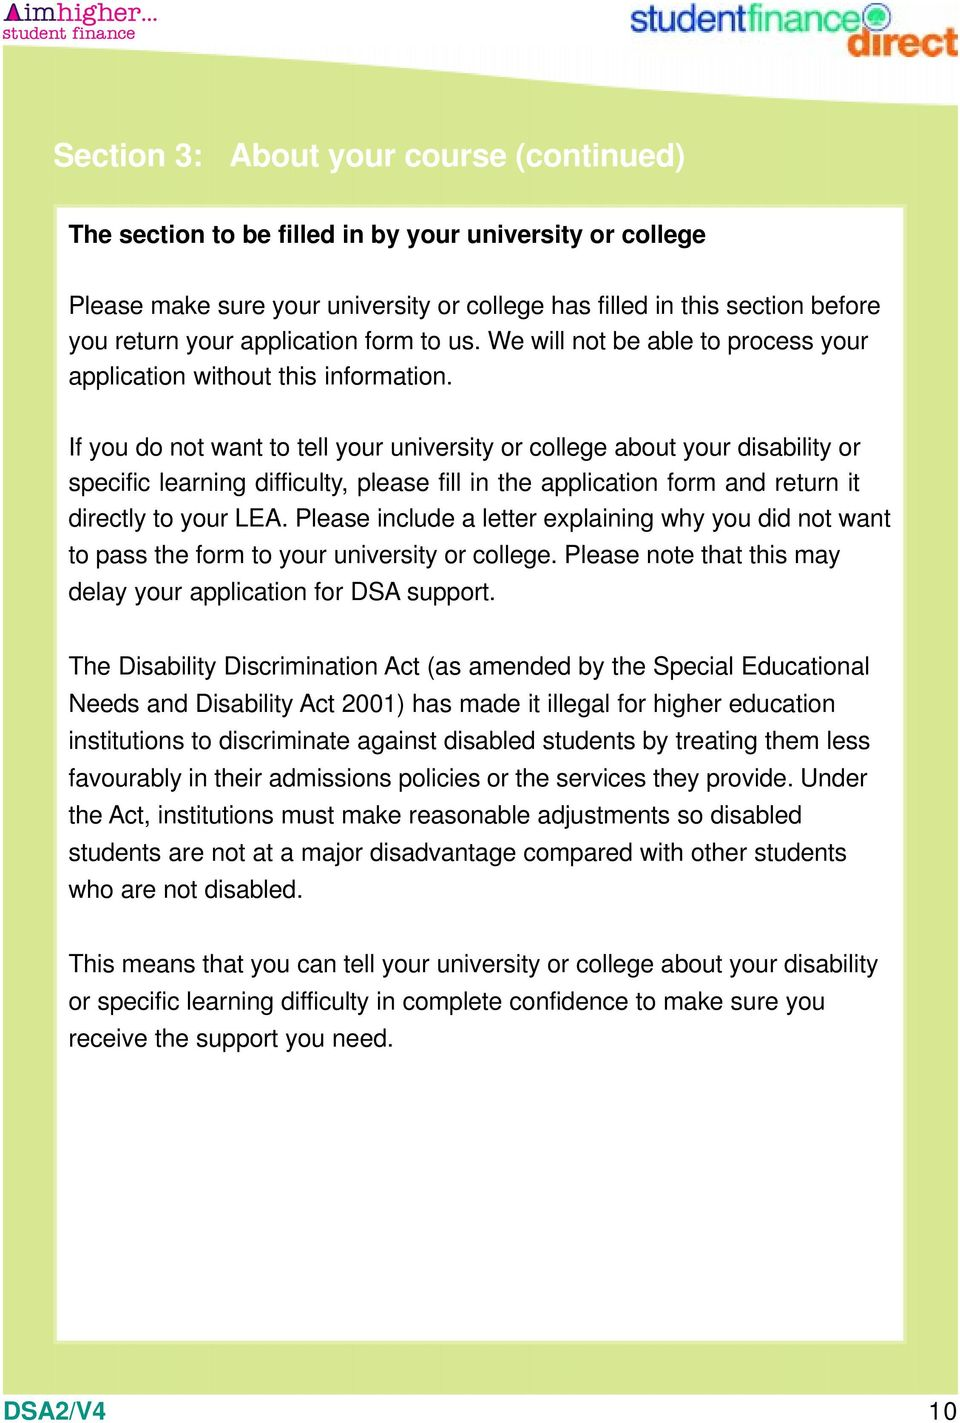 If you do not want to tell your university or college about your disability or specific learning difficulty, please fill in the application form and return it directly to your LEA.